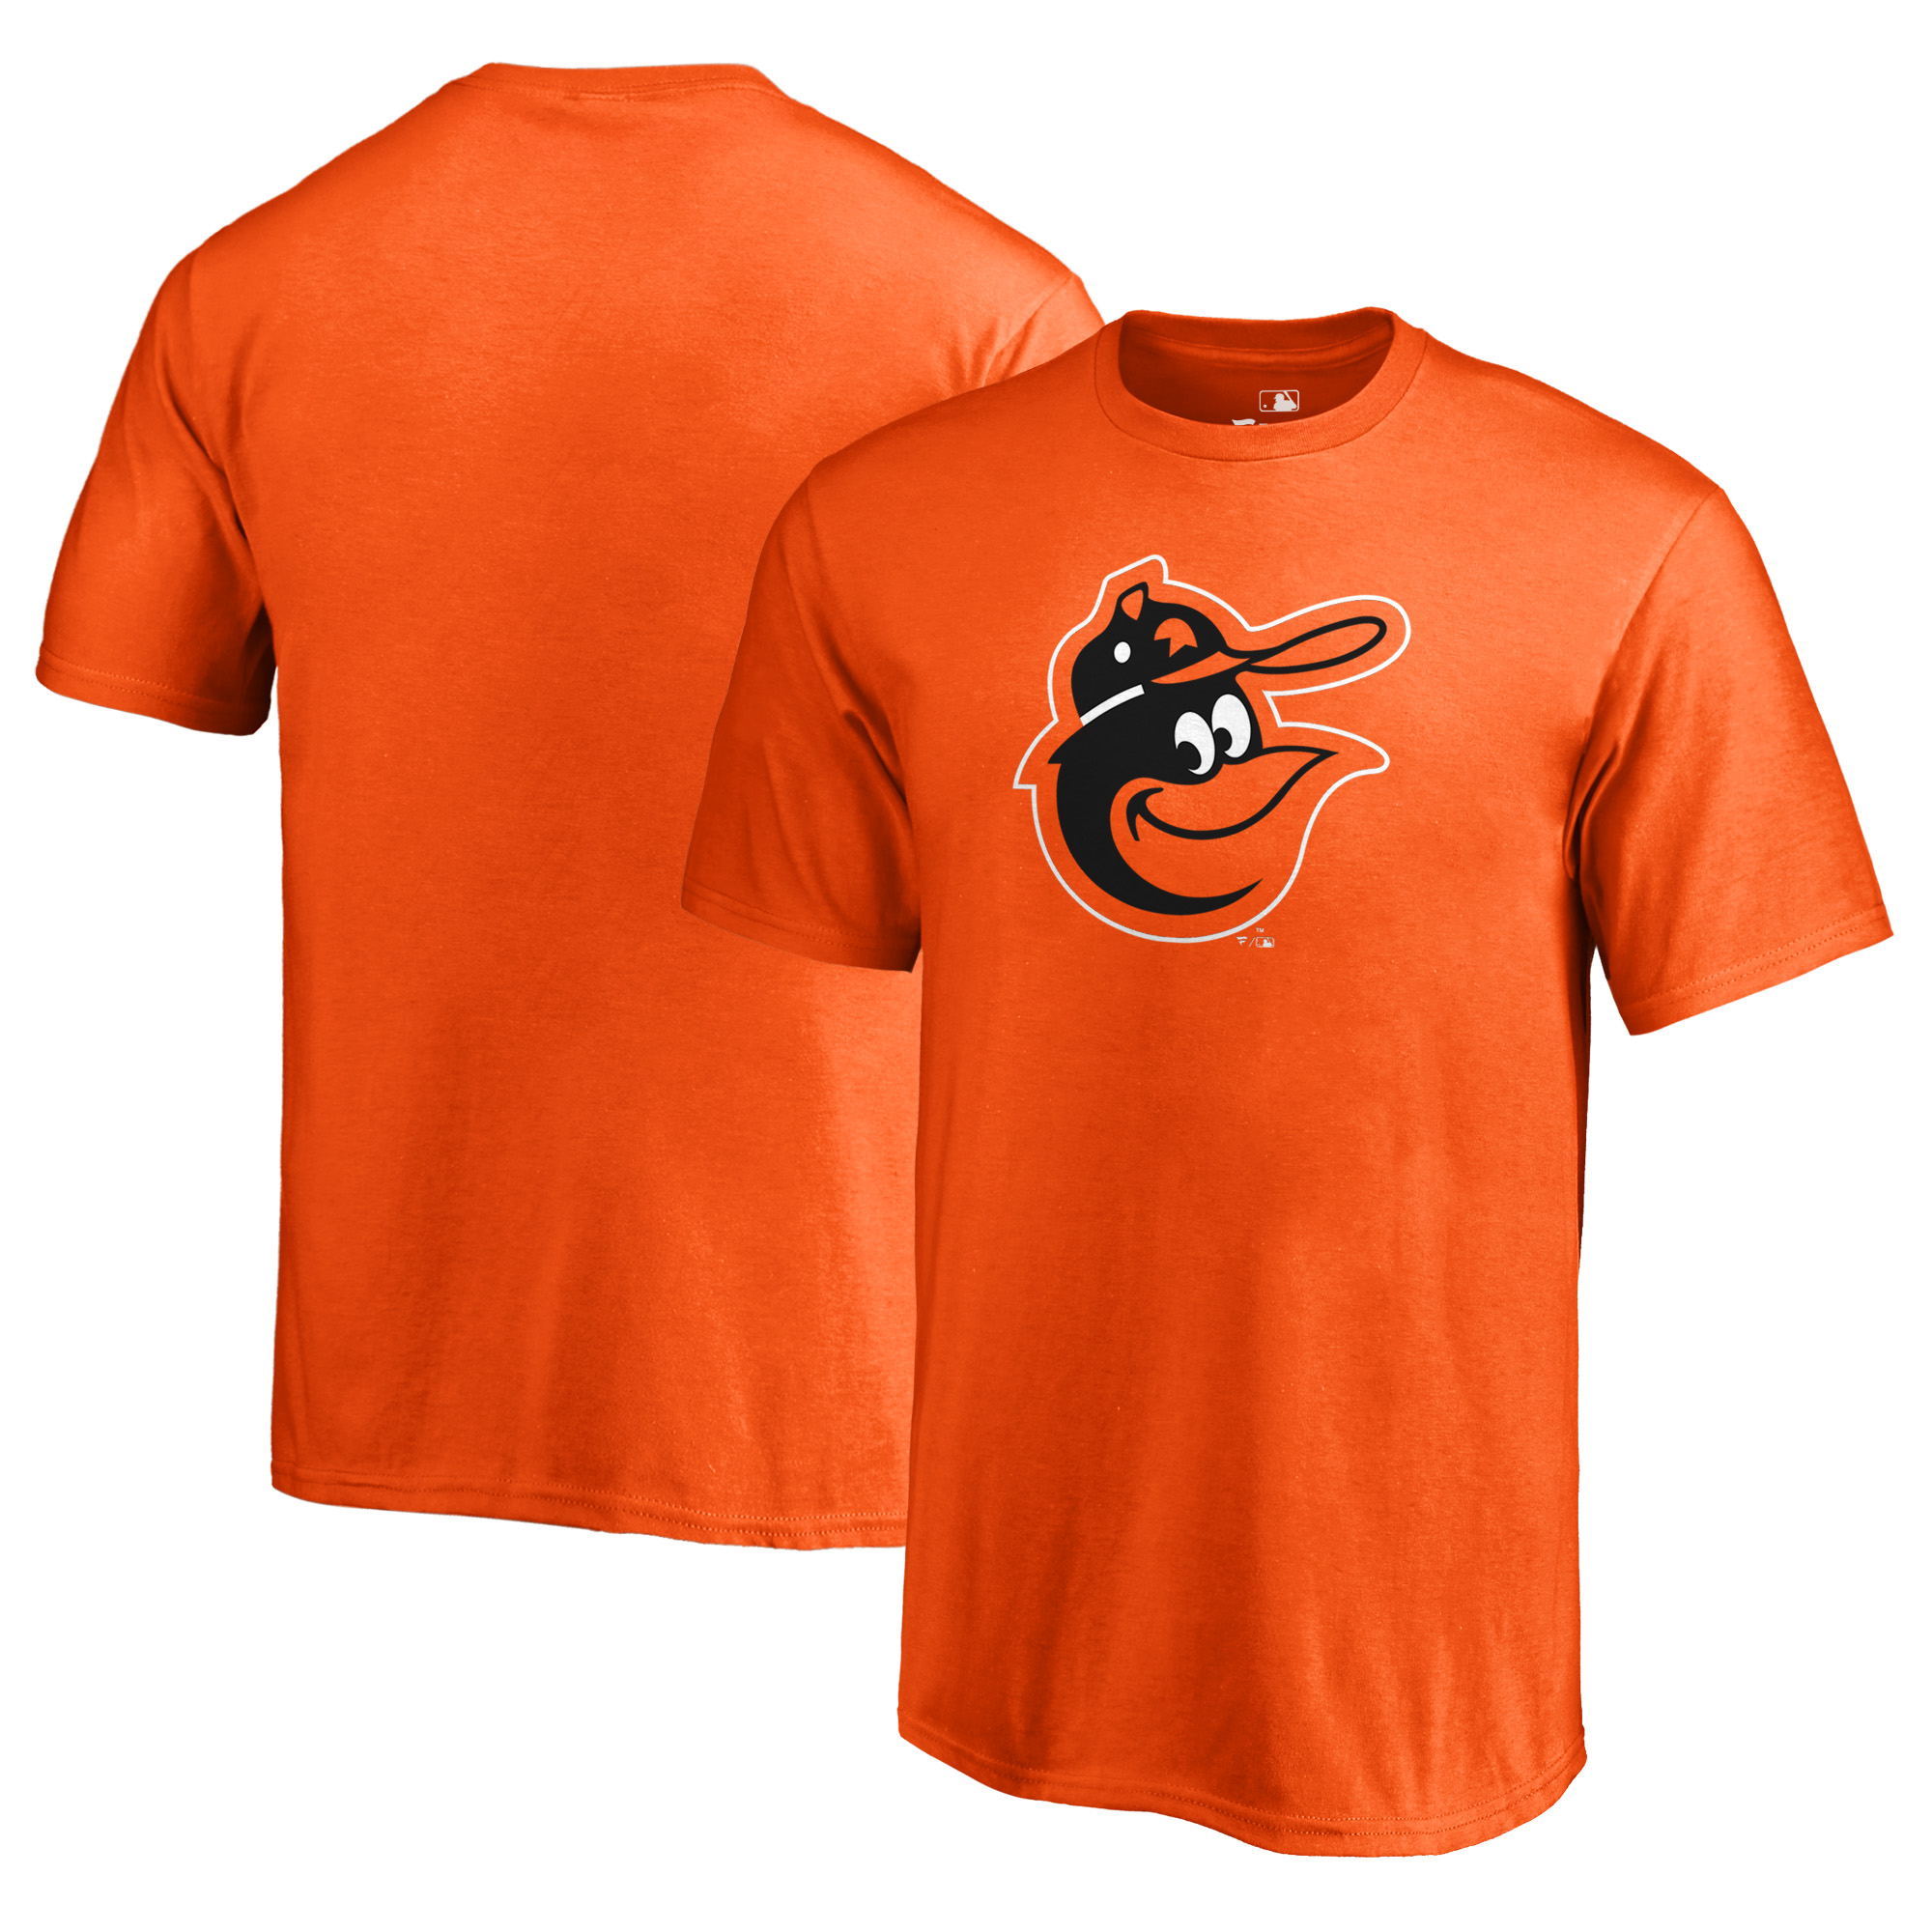 Baltimore Orioles Fanatics Branded Youth Cooperstown Collection Huntington T-Shirt - Orange